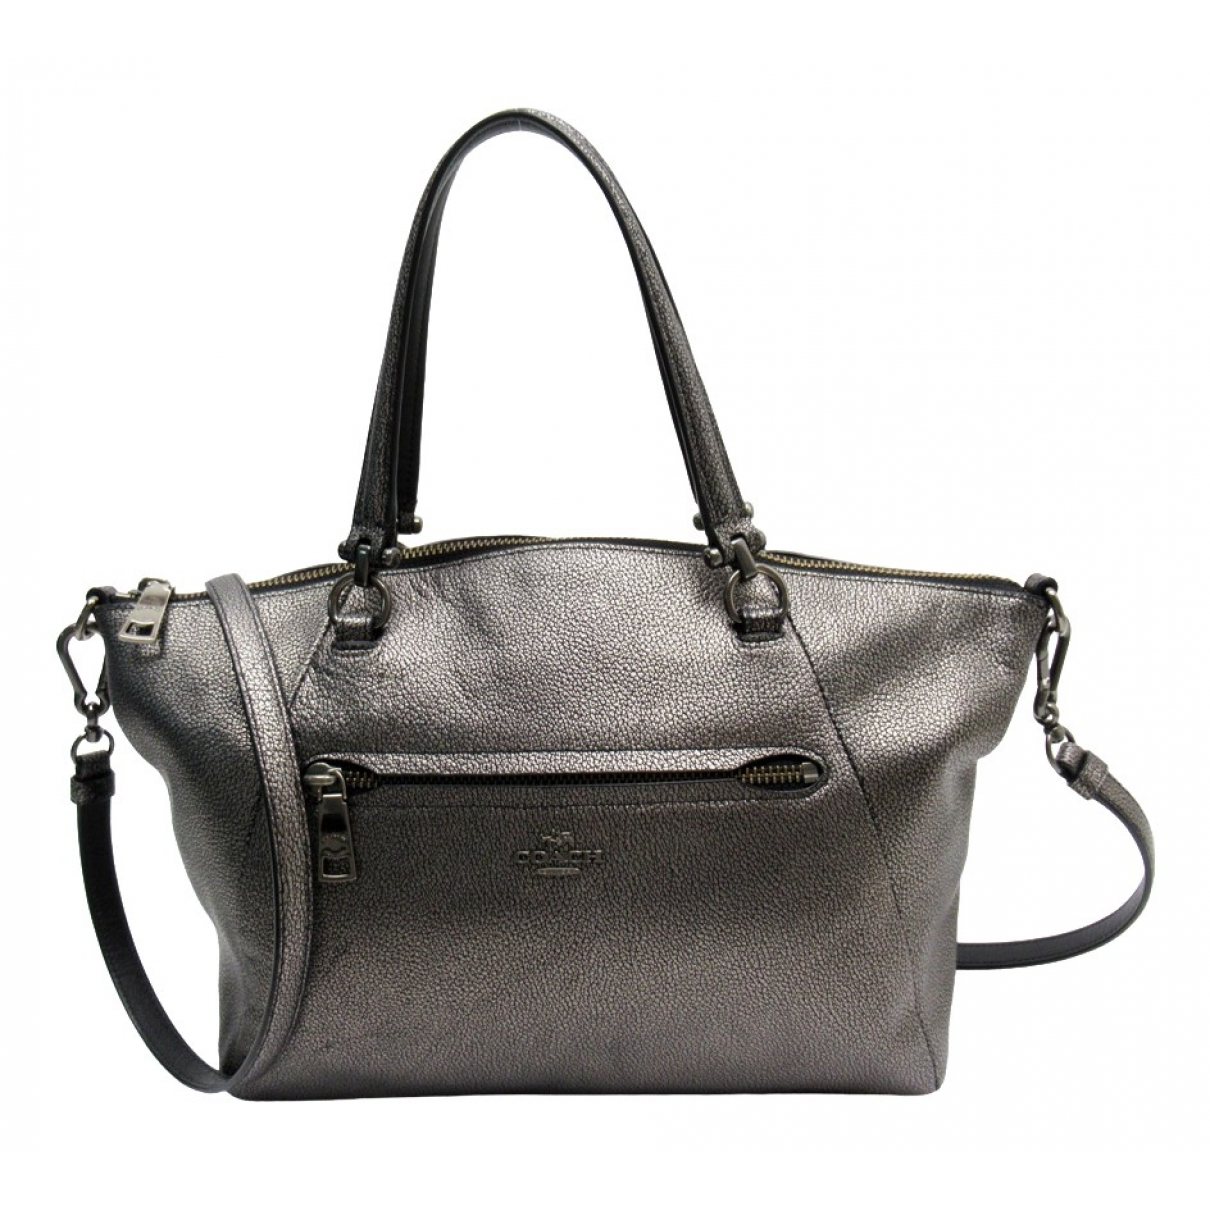 Coach \N Silver Leather handbag for Women \N